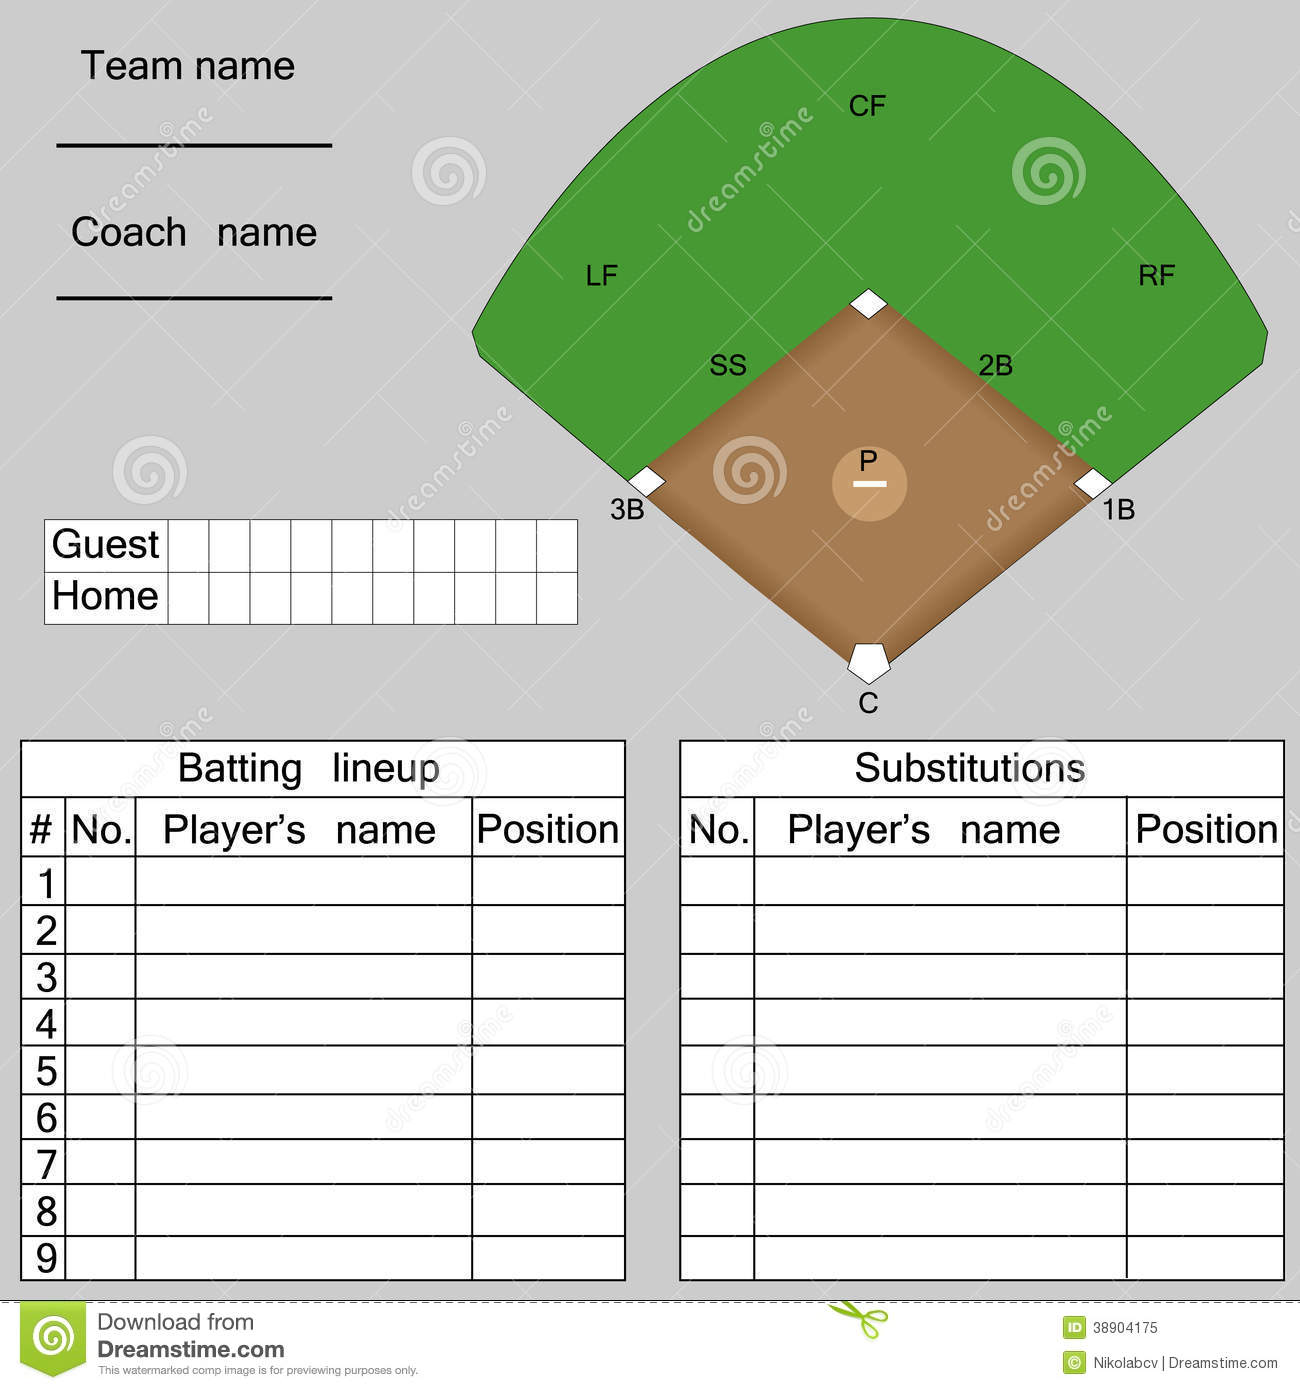 player roster template